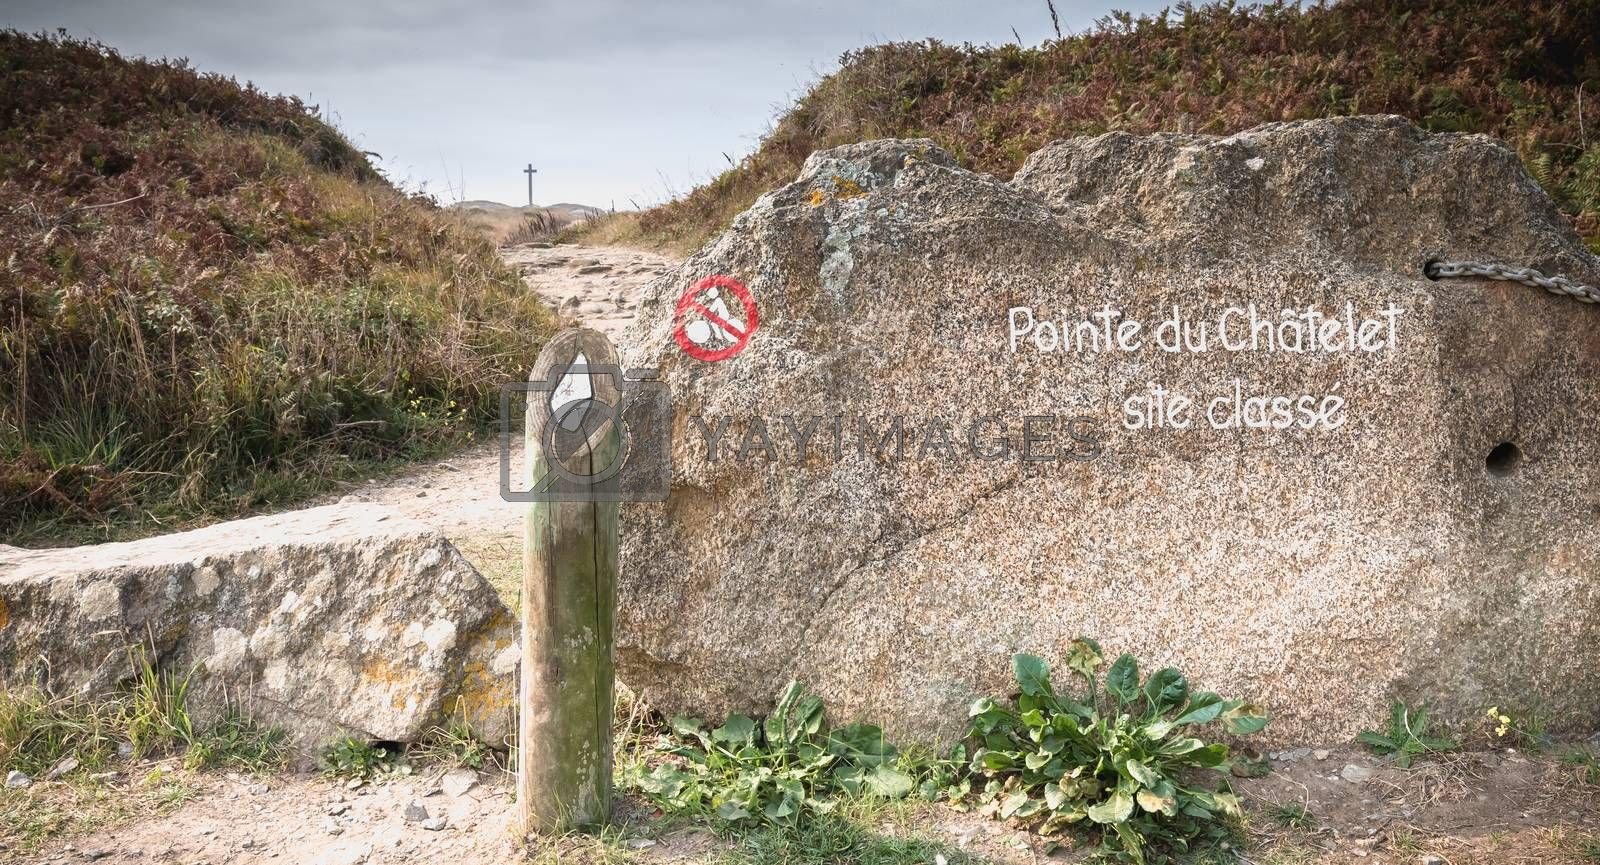 Pointe du Châtelet Classified Site written in paint on a stone at the entrance of a path on the island of Yeu, France